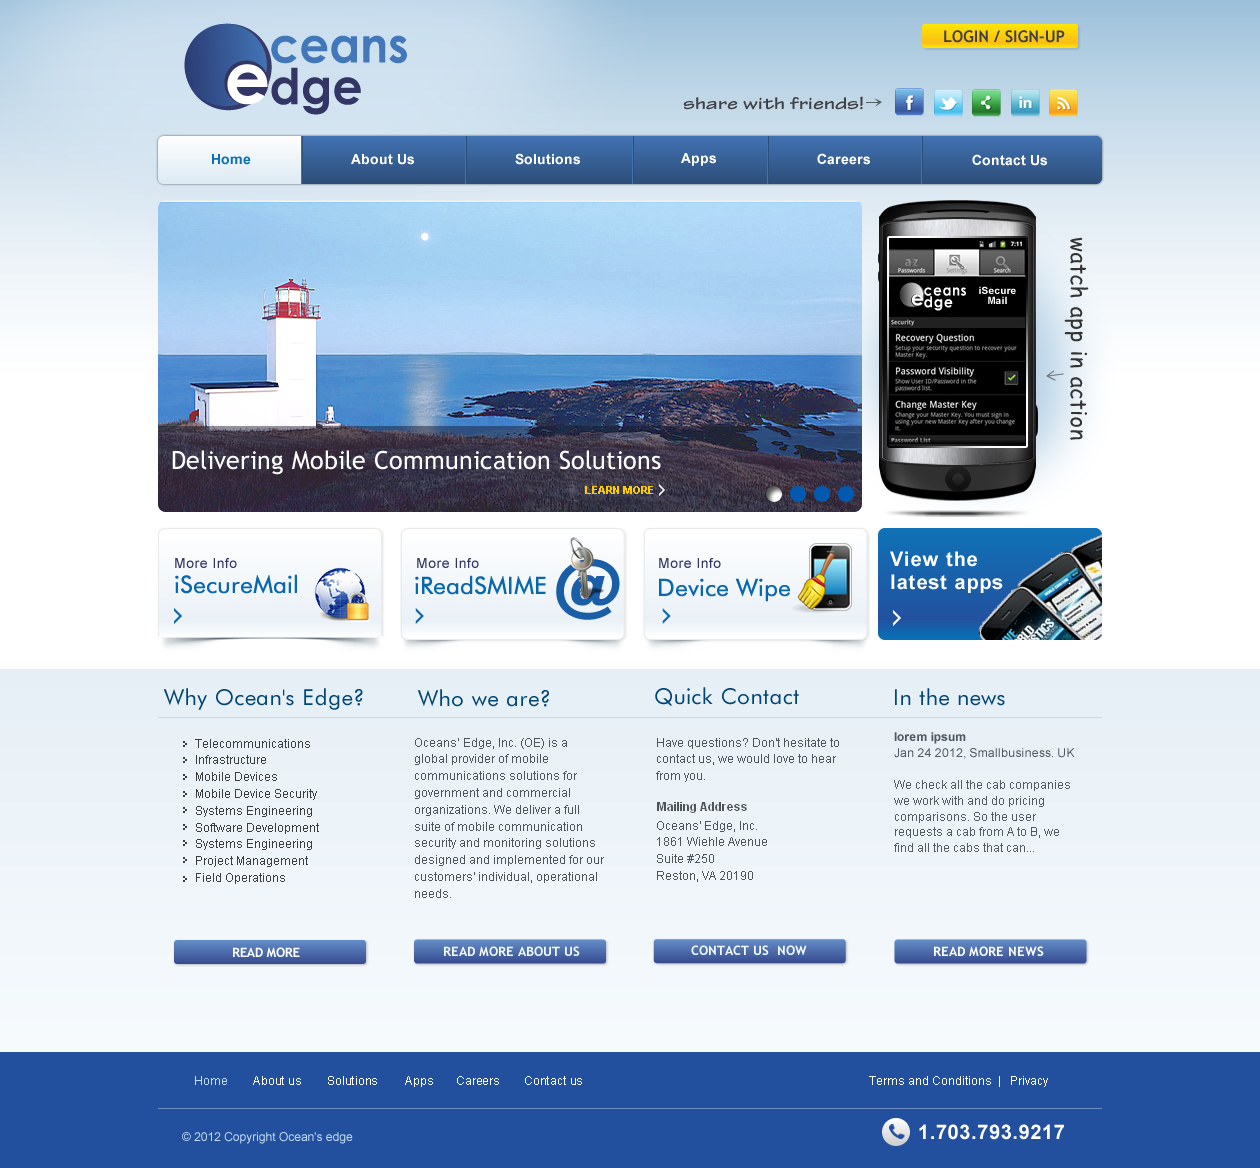 Web Page Design Contests Web Page Design Needed For Company Oceans